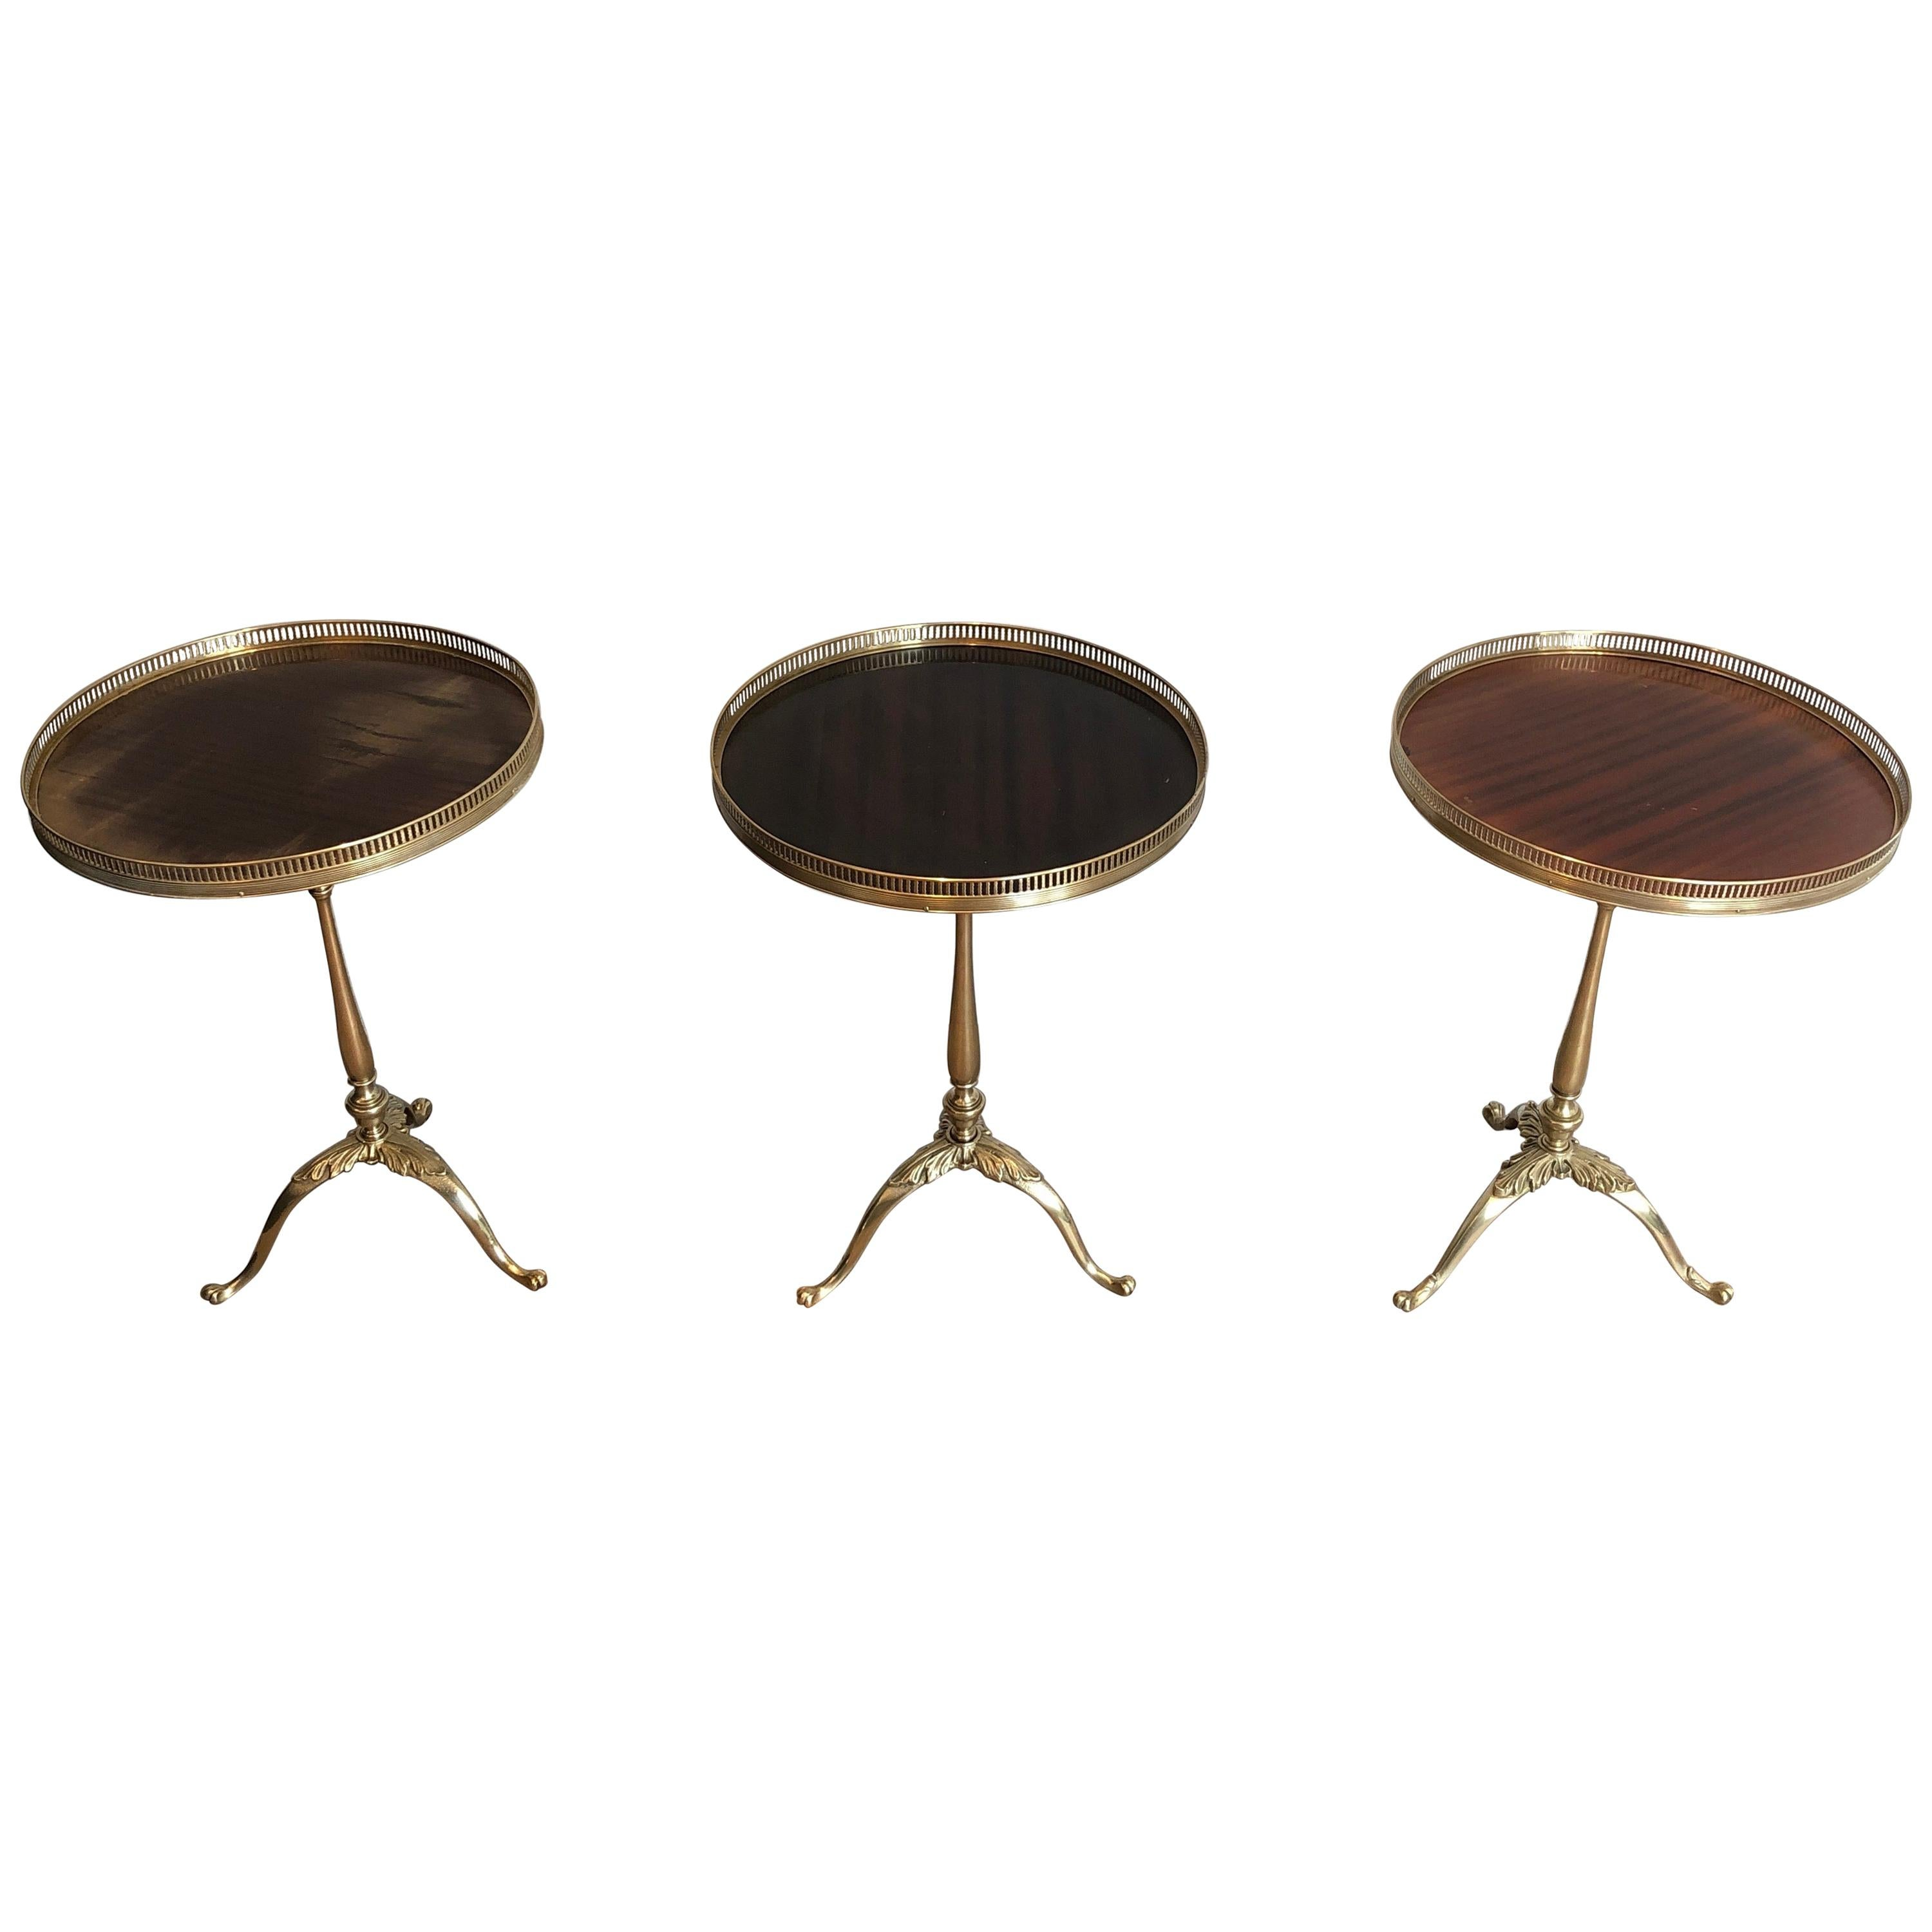 Set of 3 Neoclassical Style Brass and Mahogany Side Tables